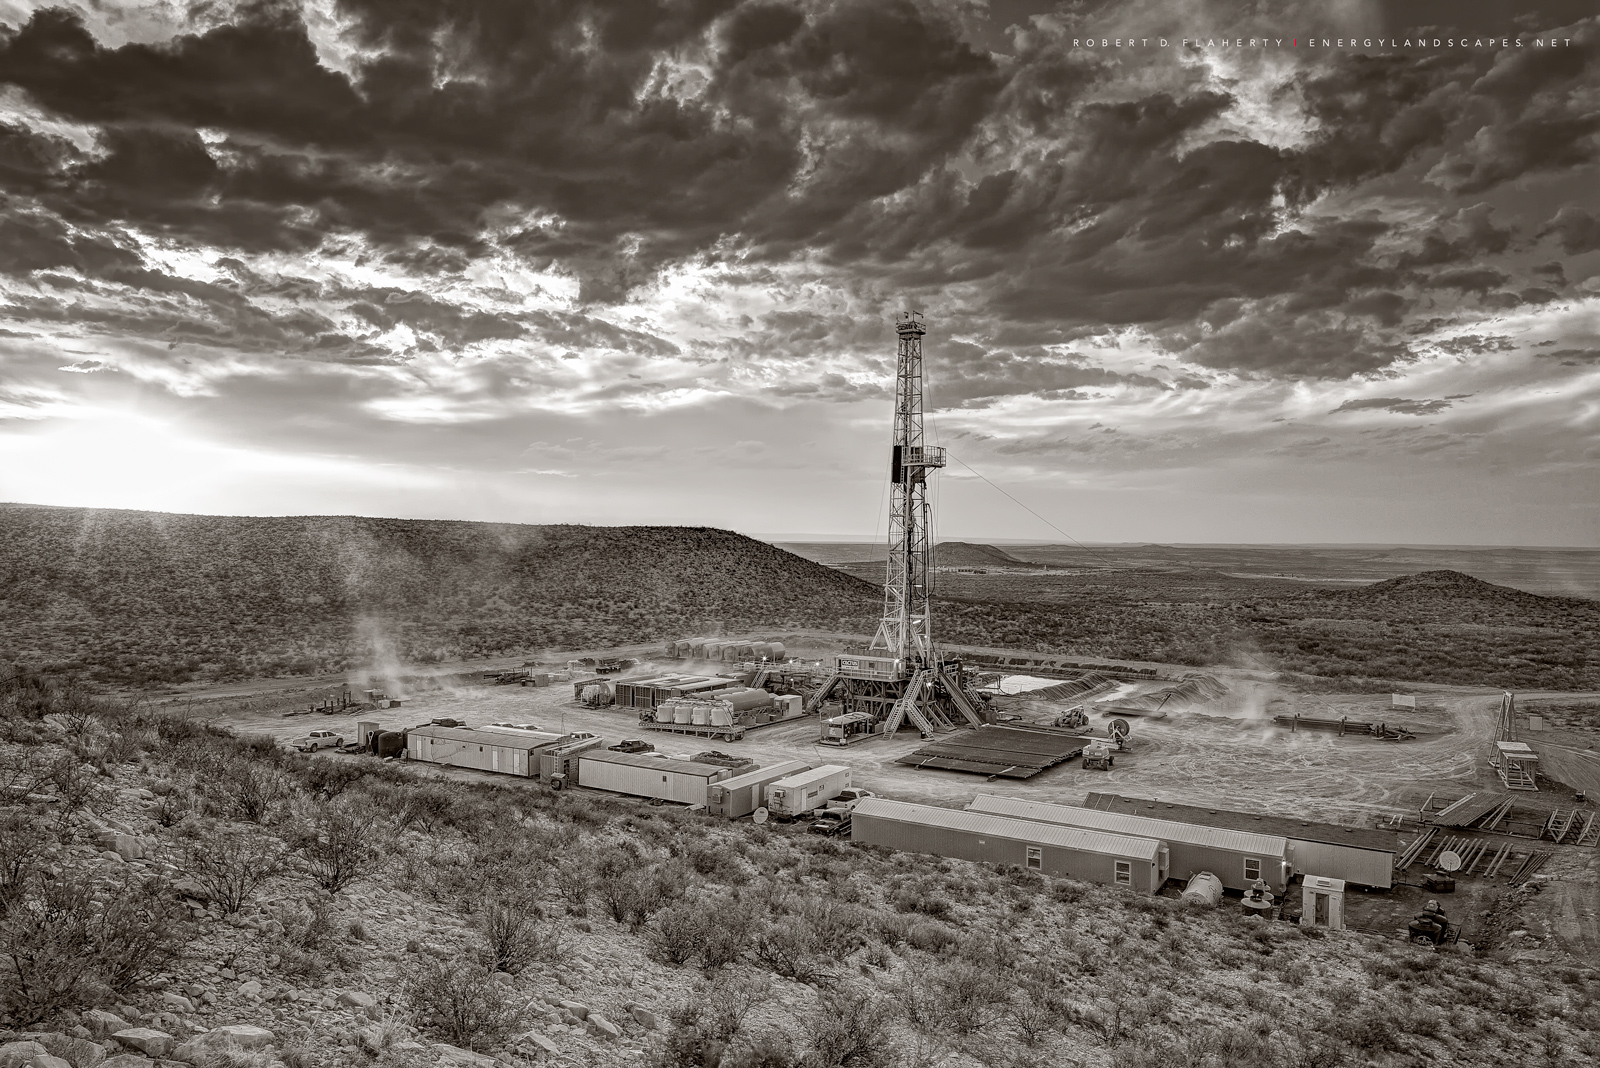 Delaware Basin, Permian Basin, West Texas, Mountain, drilling rig, Cimarex, Chevron, Wind, sepia, black and white, black & white, photo